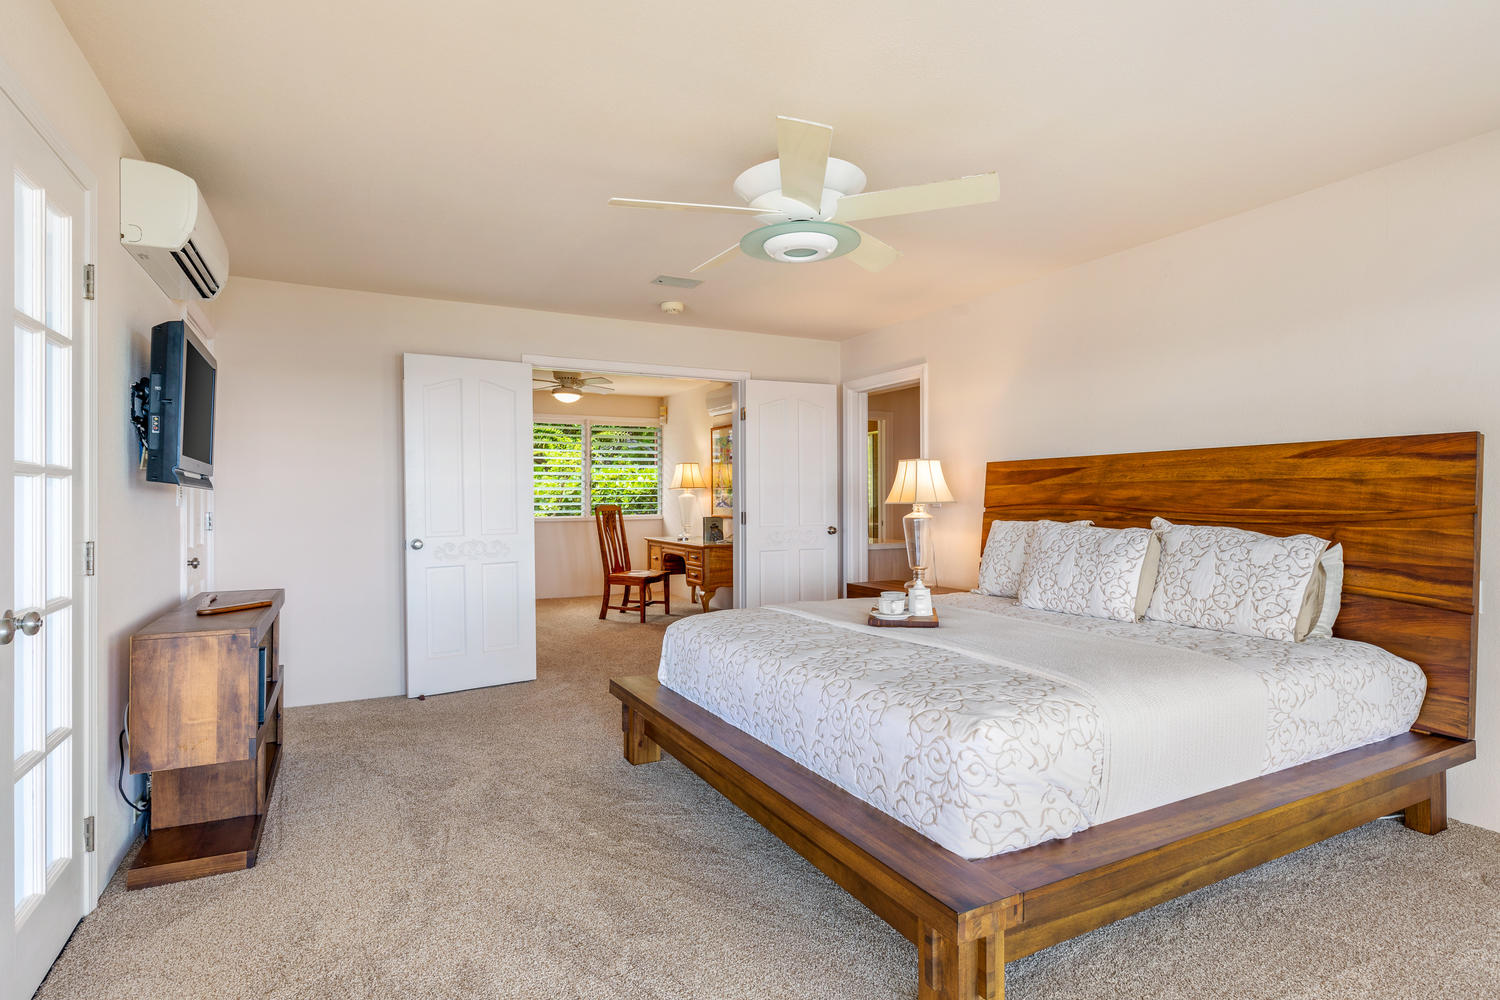 776556  776560 Alii Drive-large-027-16-Bedroom-1500x1000-72dpi.jpg